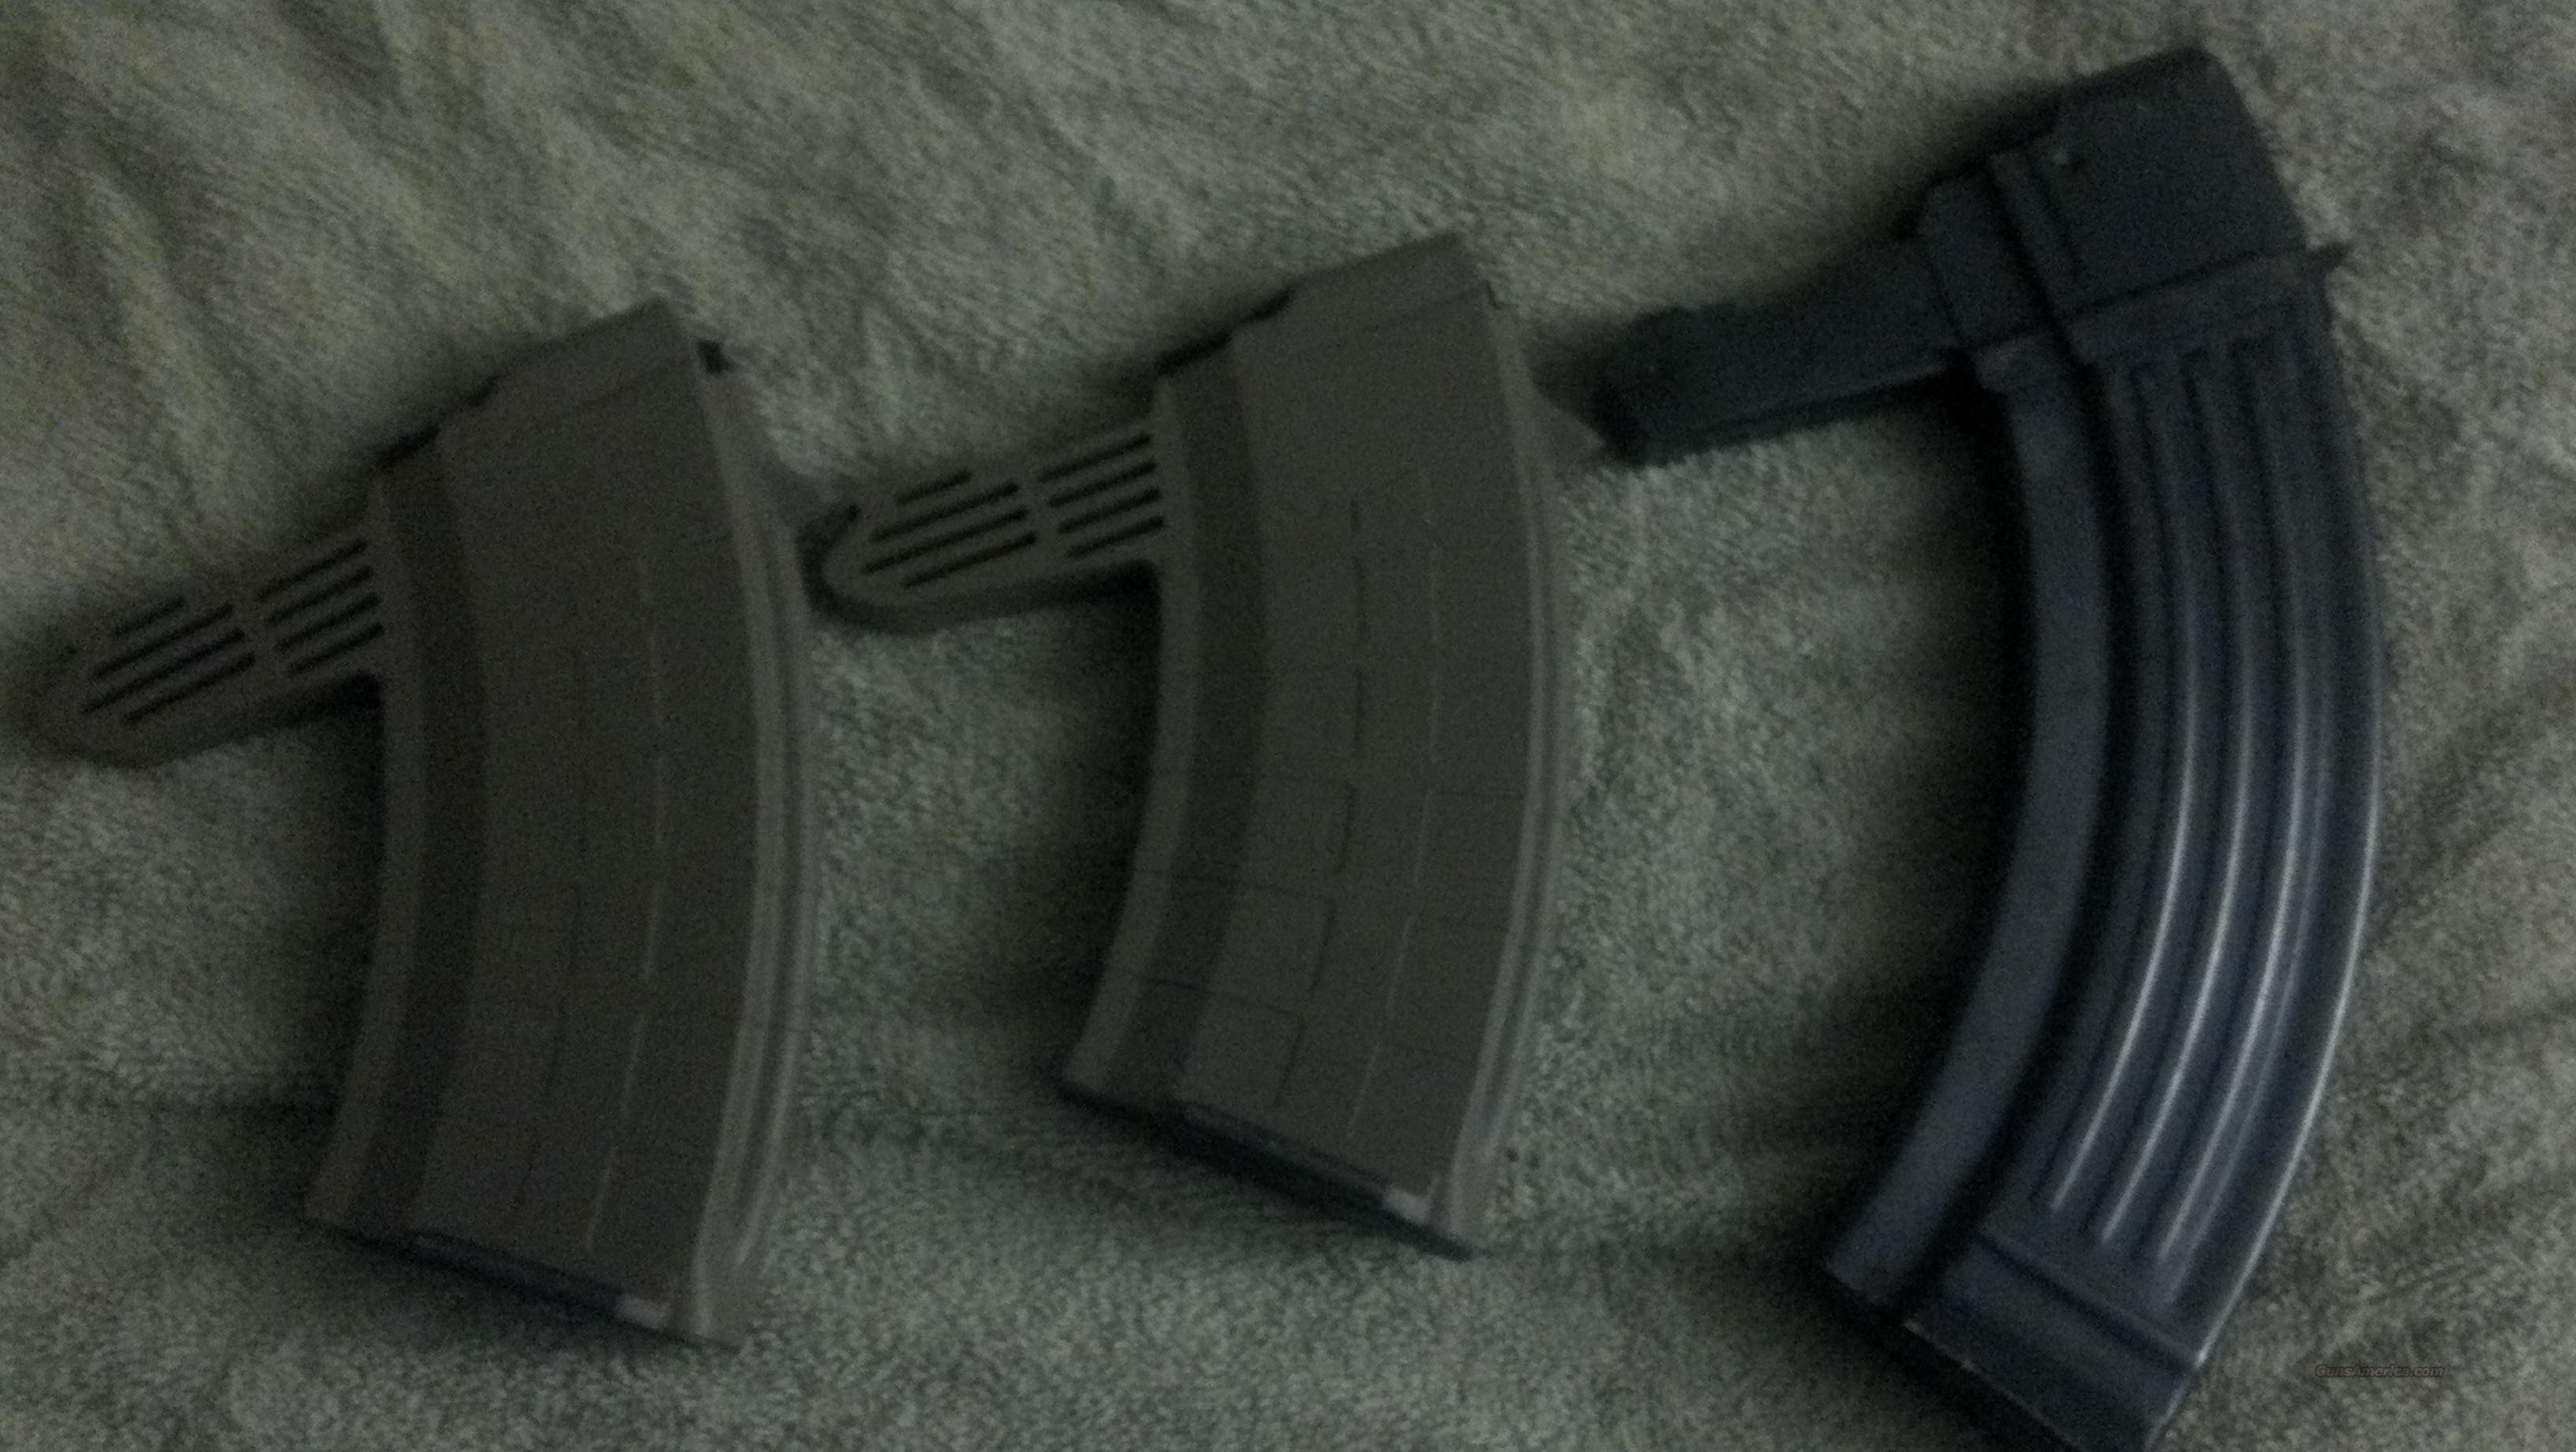 (2) New Tapco 20 round mags & (1) 30 round metal mag  Non-Guns > Magazines & Clips > Rifle Magazines > SKS